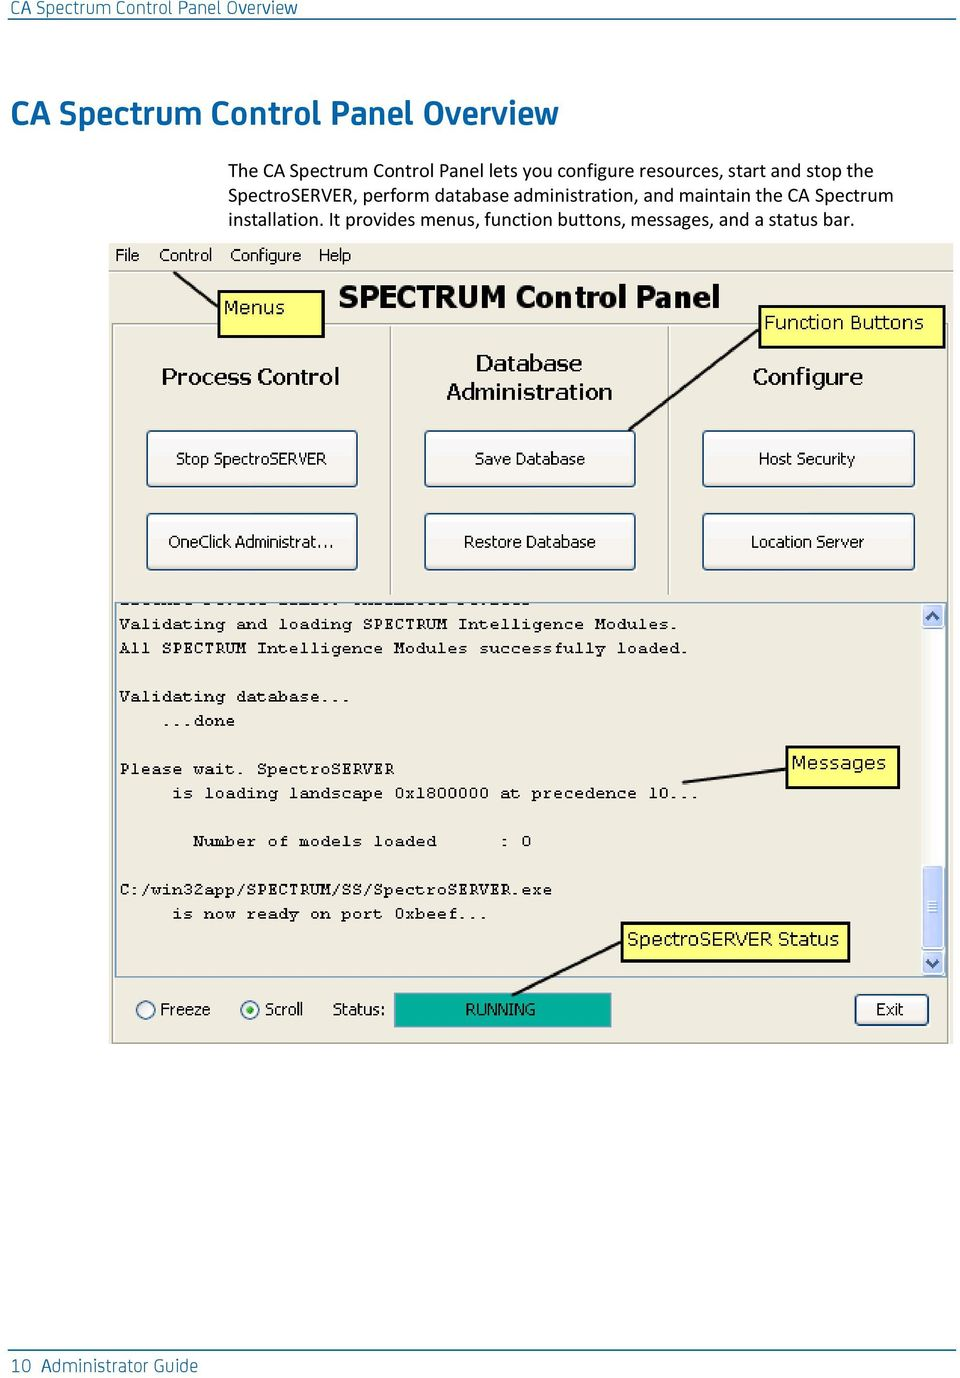 SpectroSERVER, perform database administration, and maintain the CA Spectrum